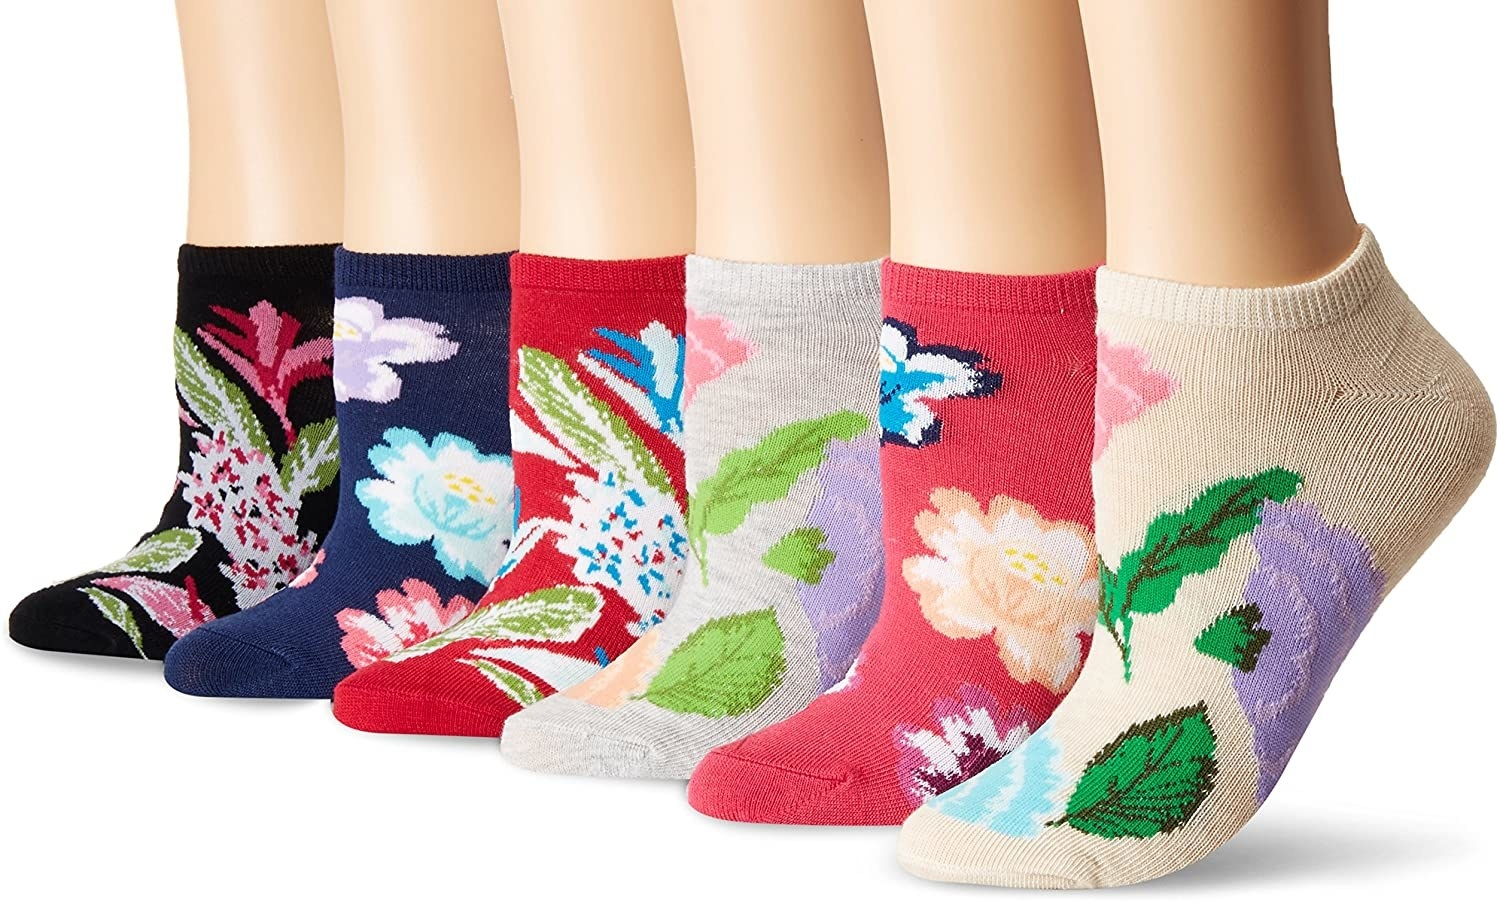 six pairs of the socks in different colors and florals